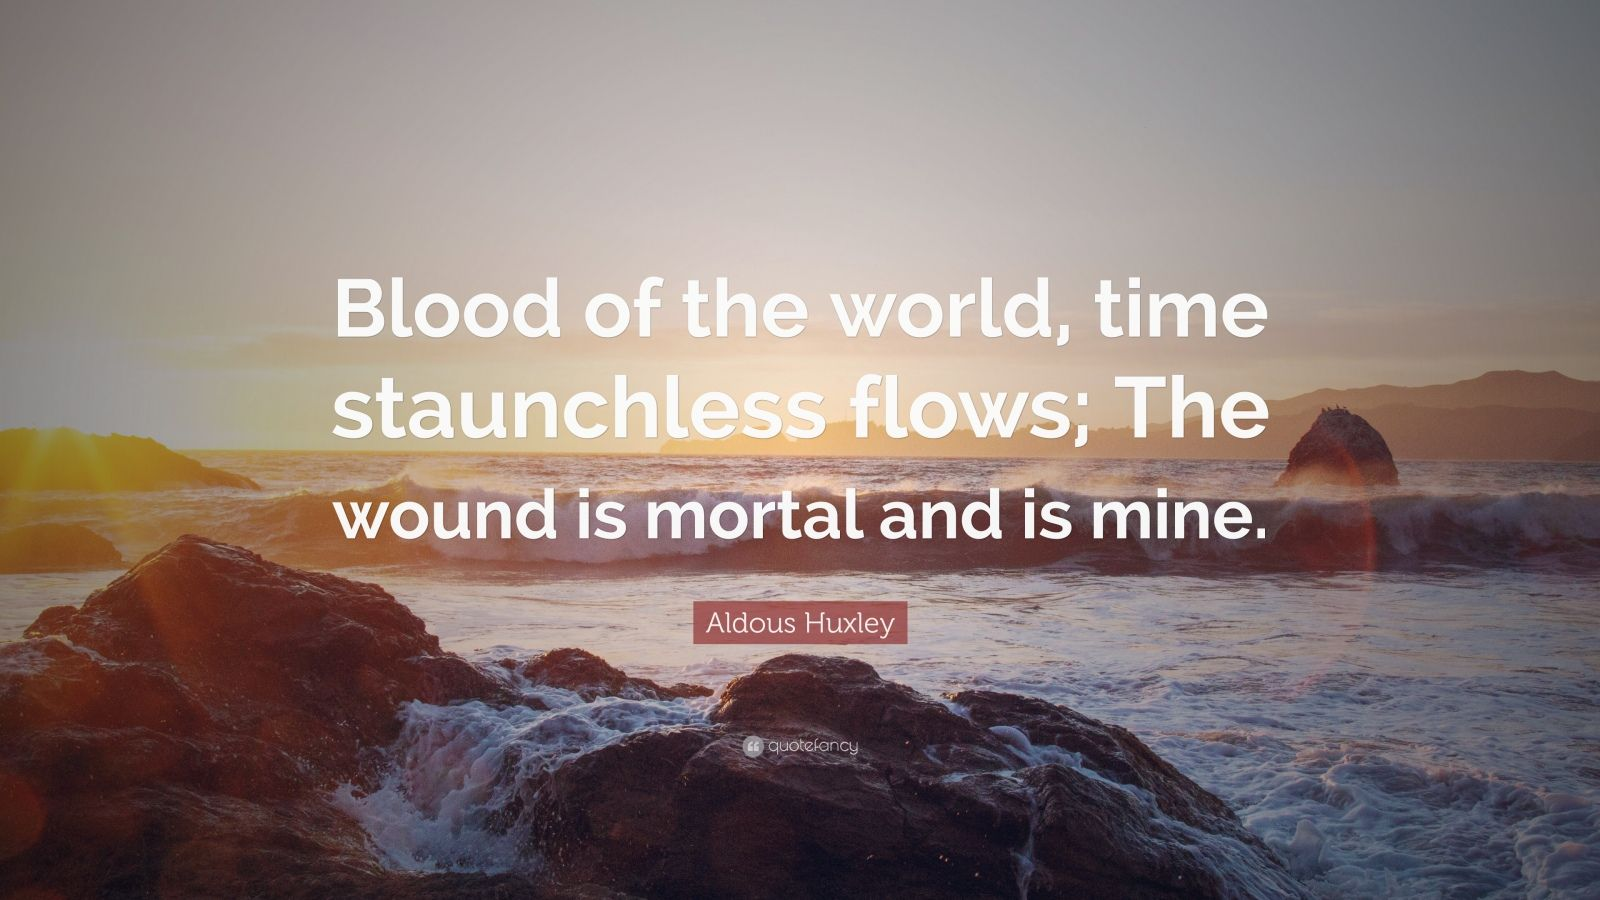 """Aldous Huxley Quote: """"Blood of the world, time staunchless flows; The wound is mortal and is mine."""""""